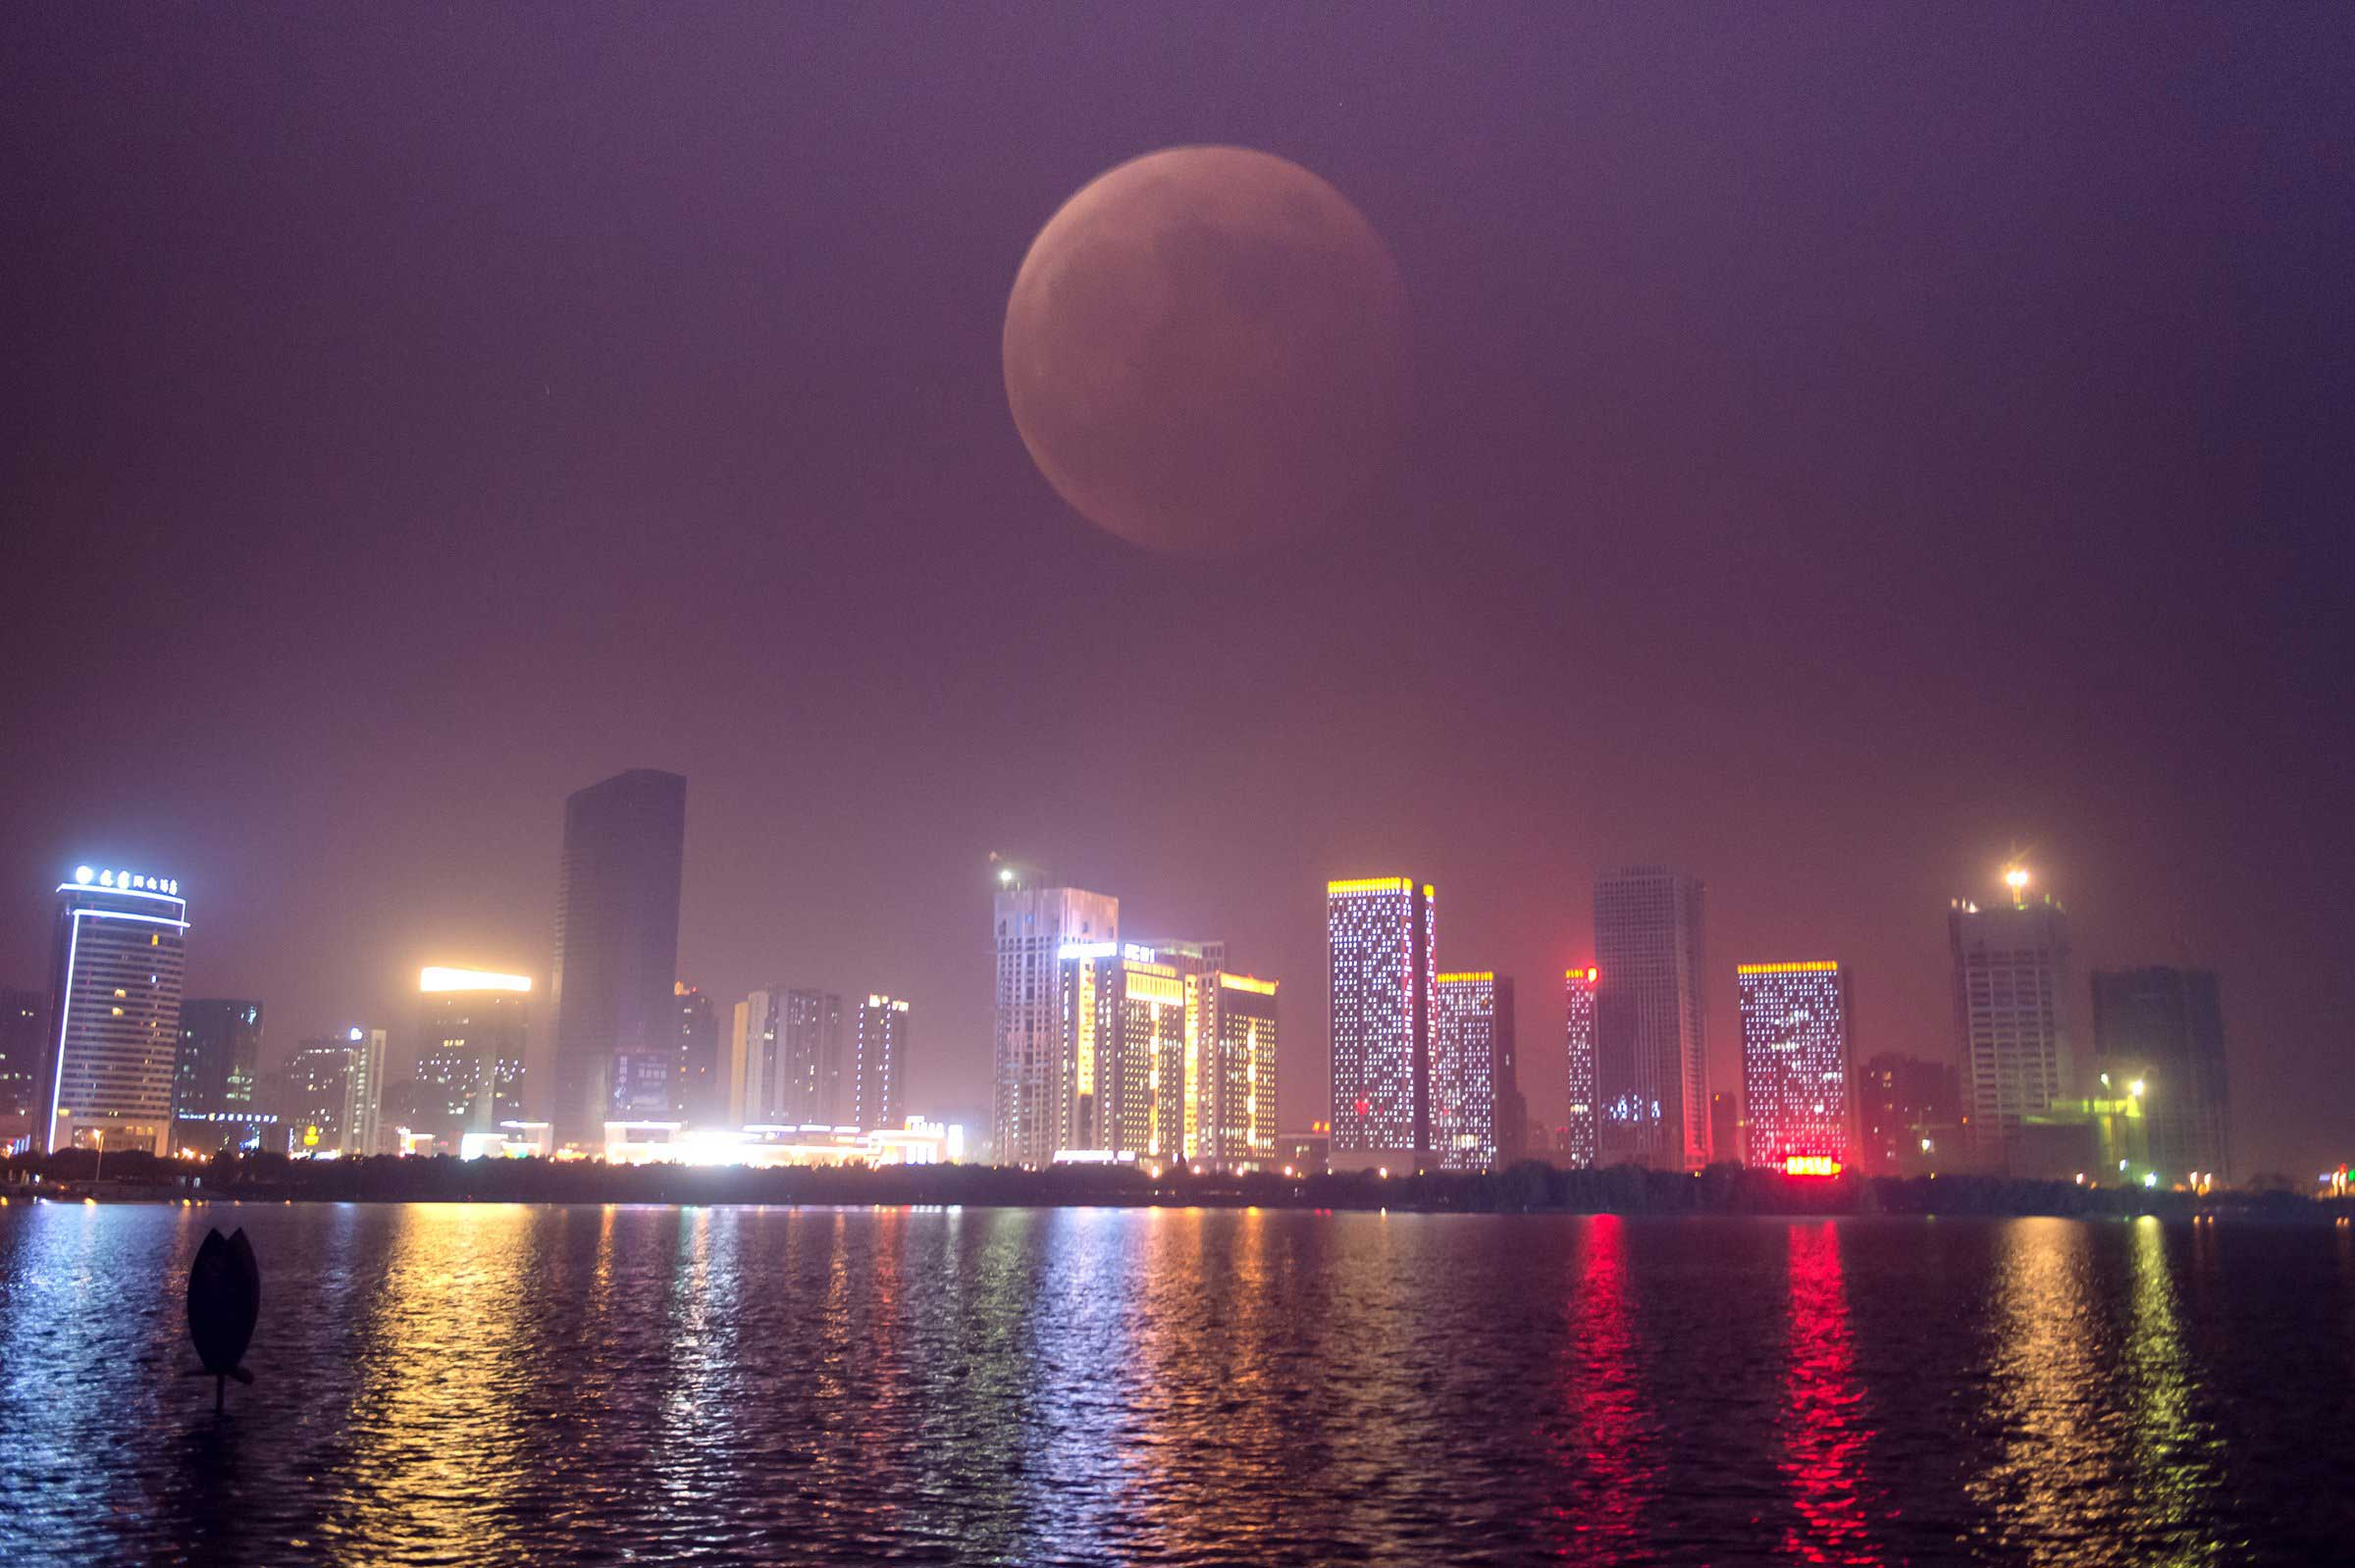 Through multiple exposures, the blood moon is shown in Hefei, China on Oct. 8, 2014.